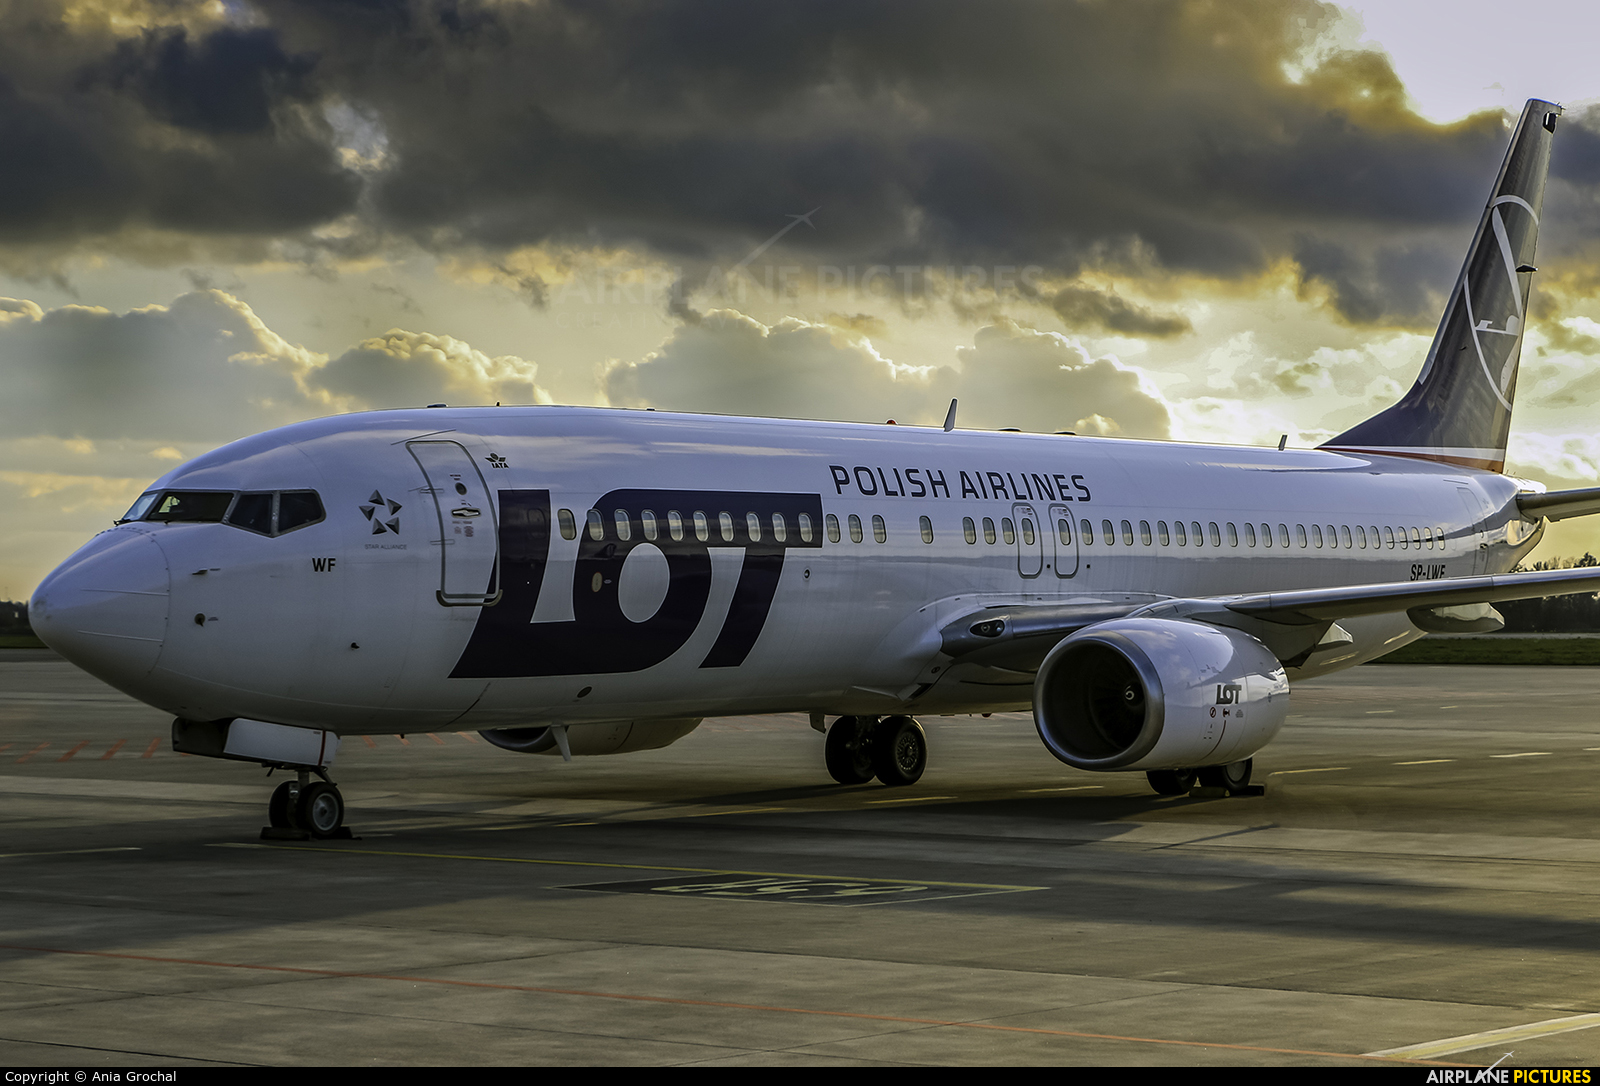 LOT - Polish Airlines SP-LWF aircraft at Warsaw - Frederic Chopin